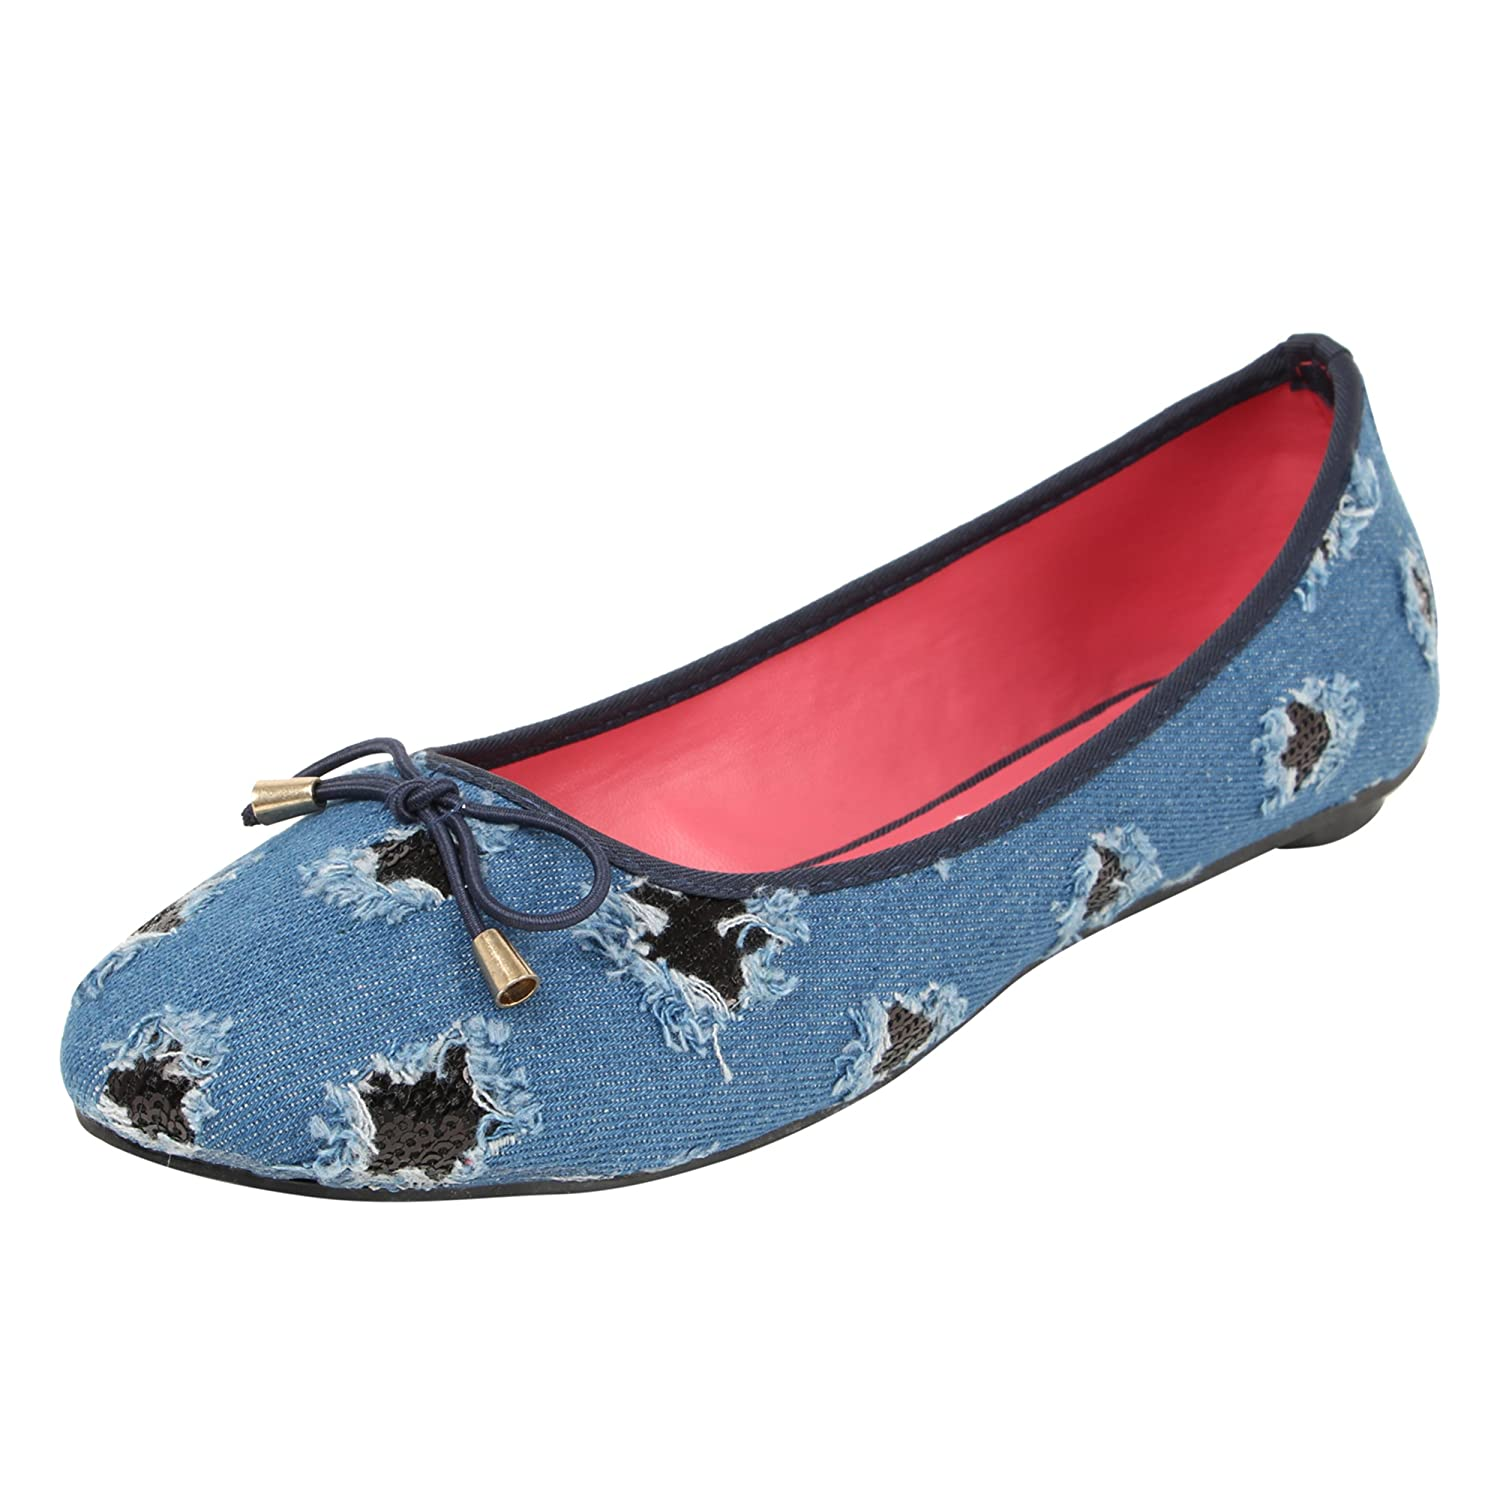 Catwalk Blue Ballerina for Women